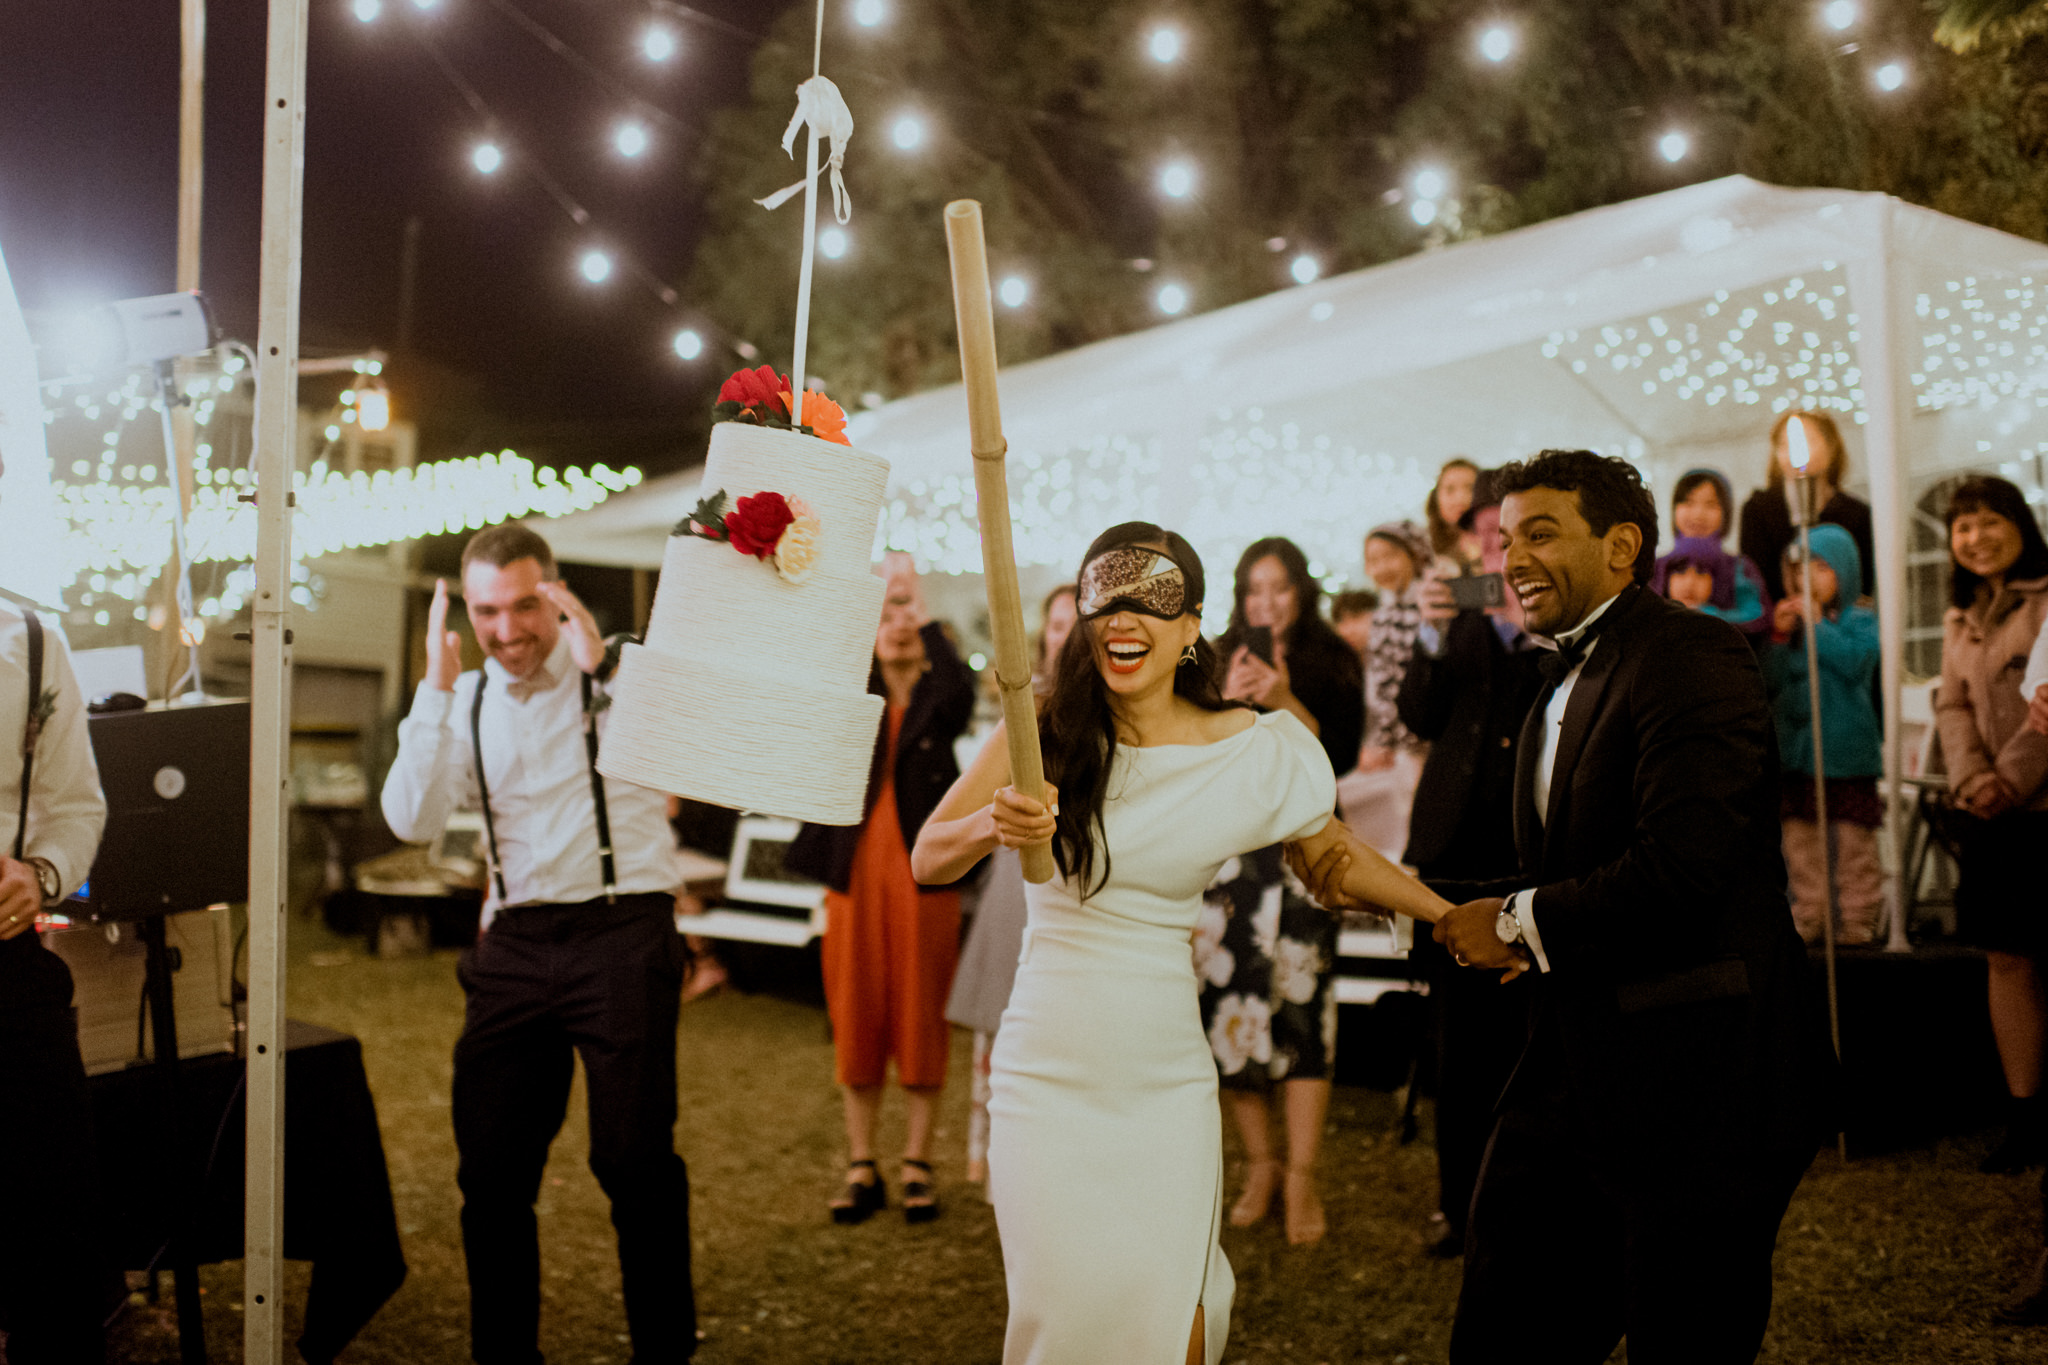 Blindfolded bride holds up a bat and attempts to hit pinata cake